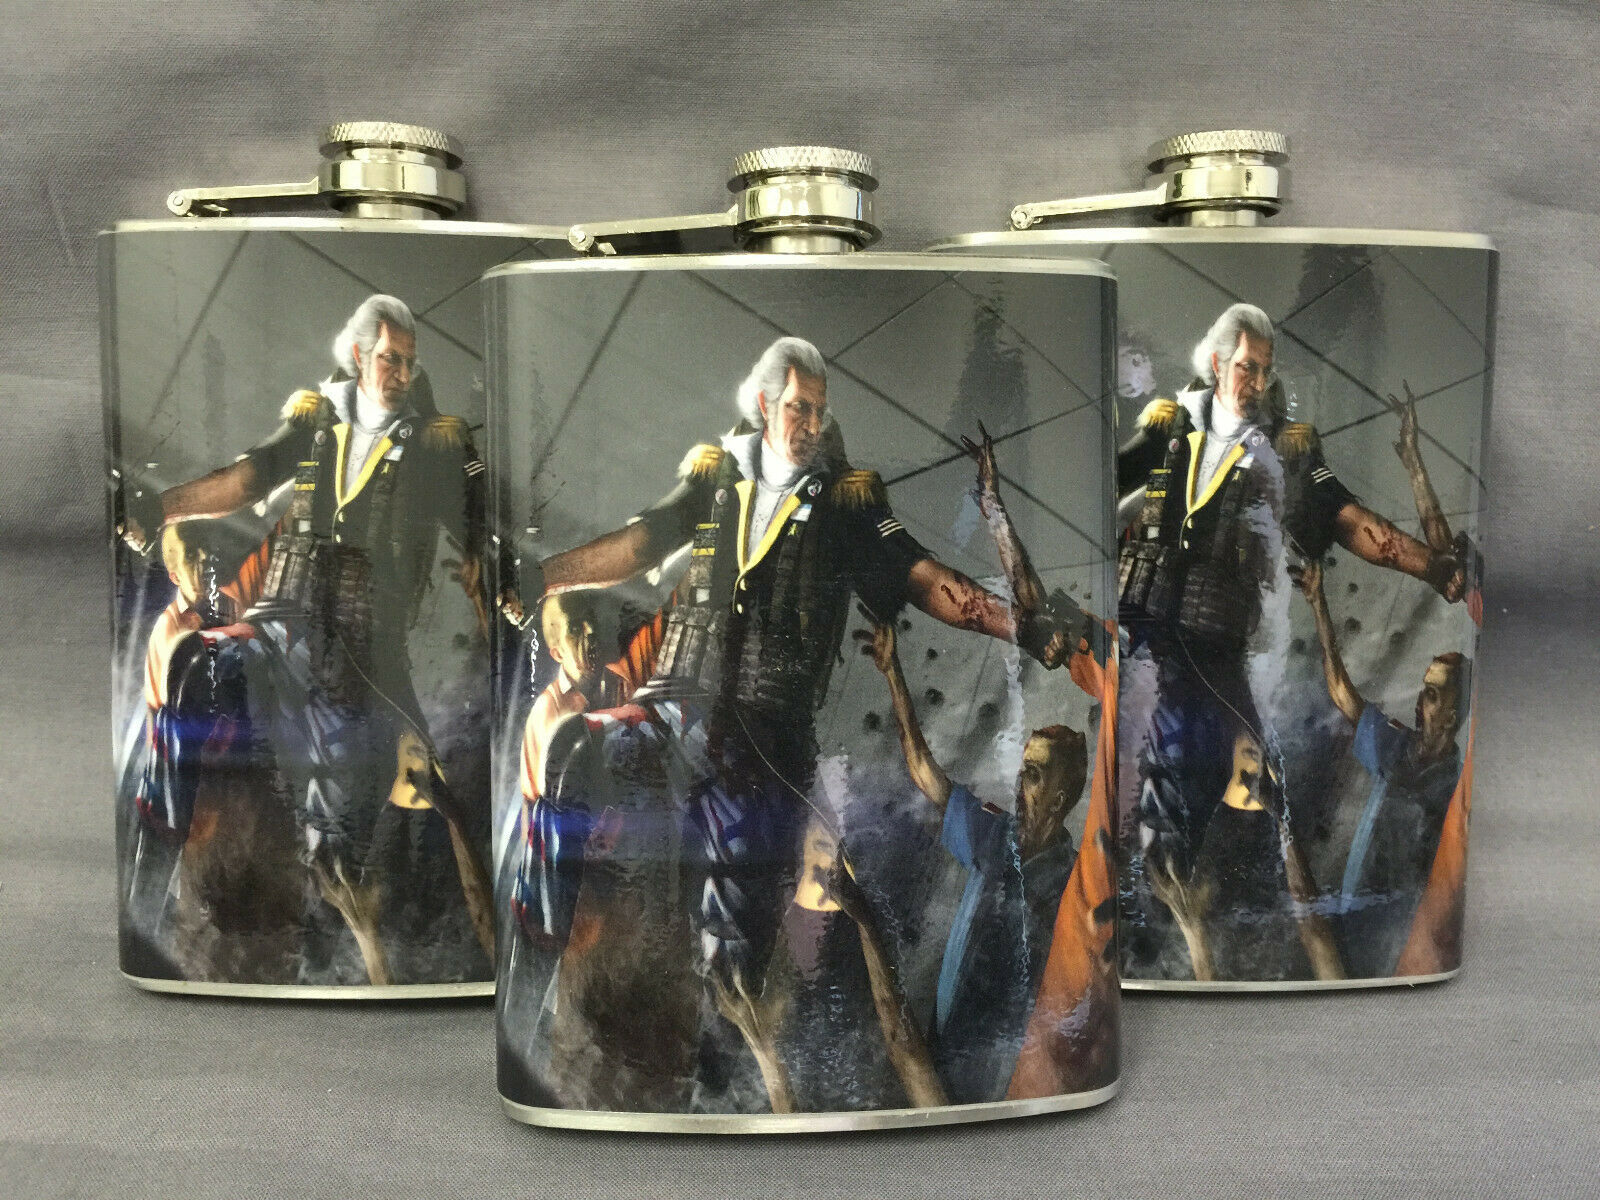 Set of 3 George Washington Zombies D 9 Flasks 8oz Stainless Steel Hip Drinking